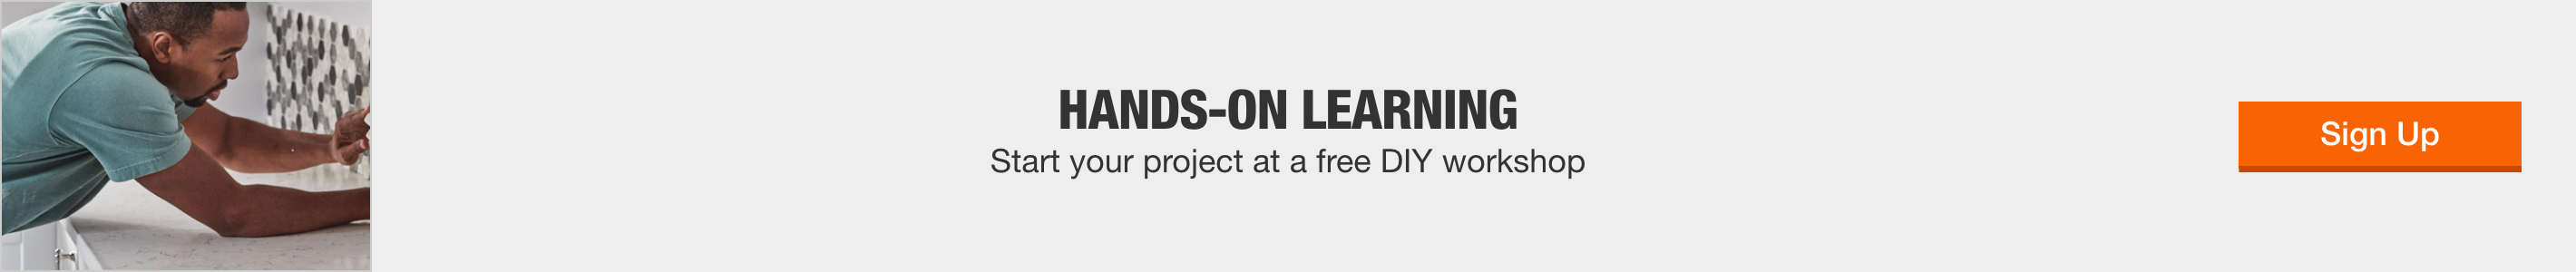 hands-on learning - start your project at a free DIY workshop